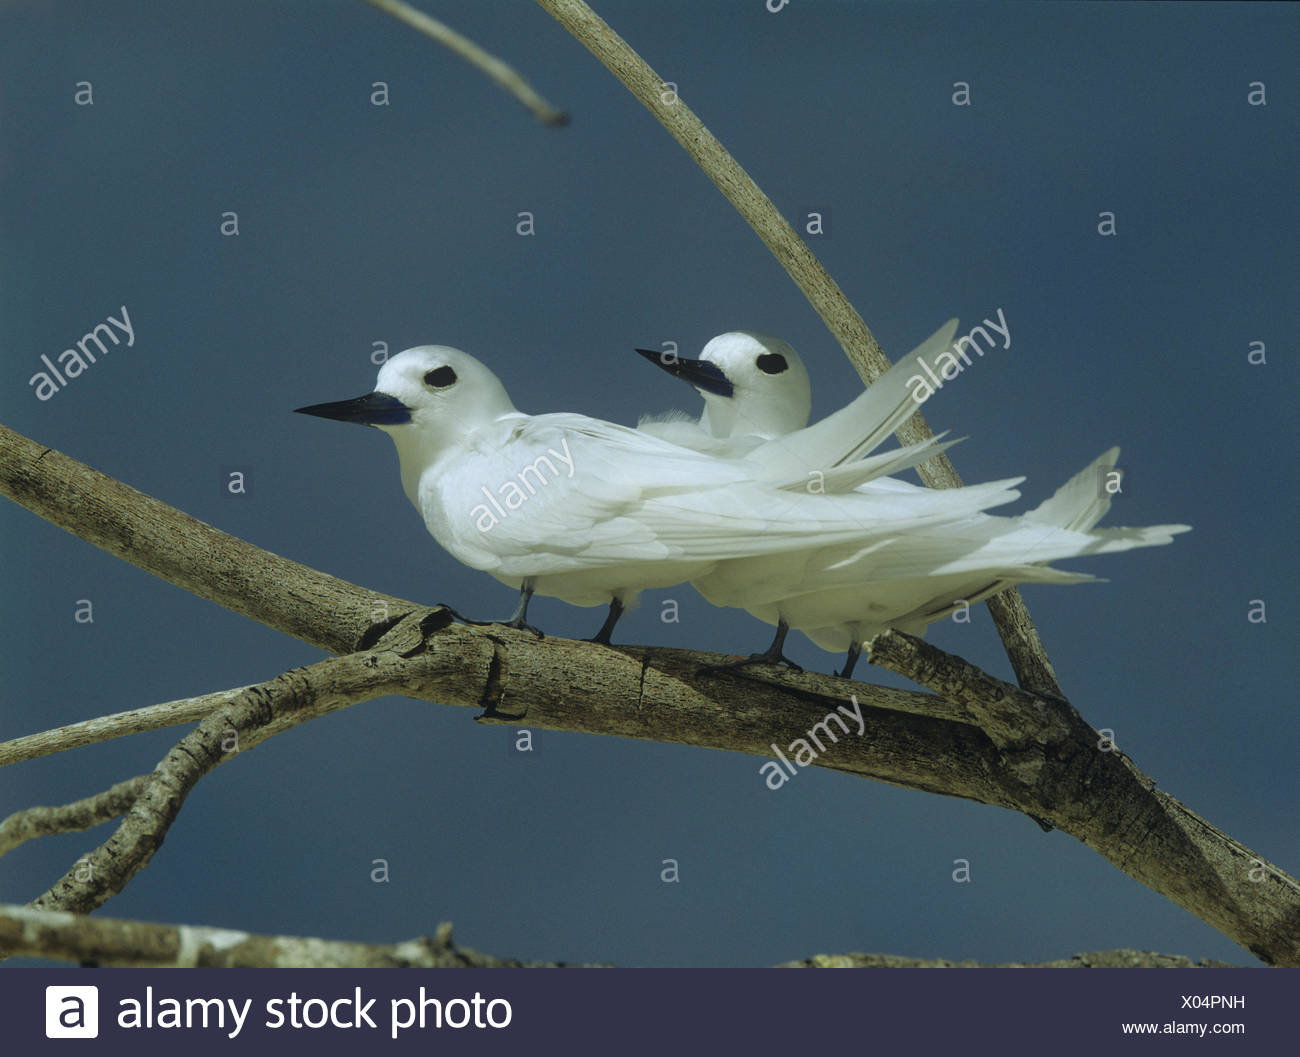 Forks, fairy terns, Gygis alb, birds, animals, terns, deliberate dives, the Seychelles, plumage, white, branches, sit, - Stock Image